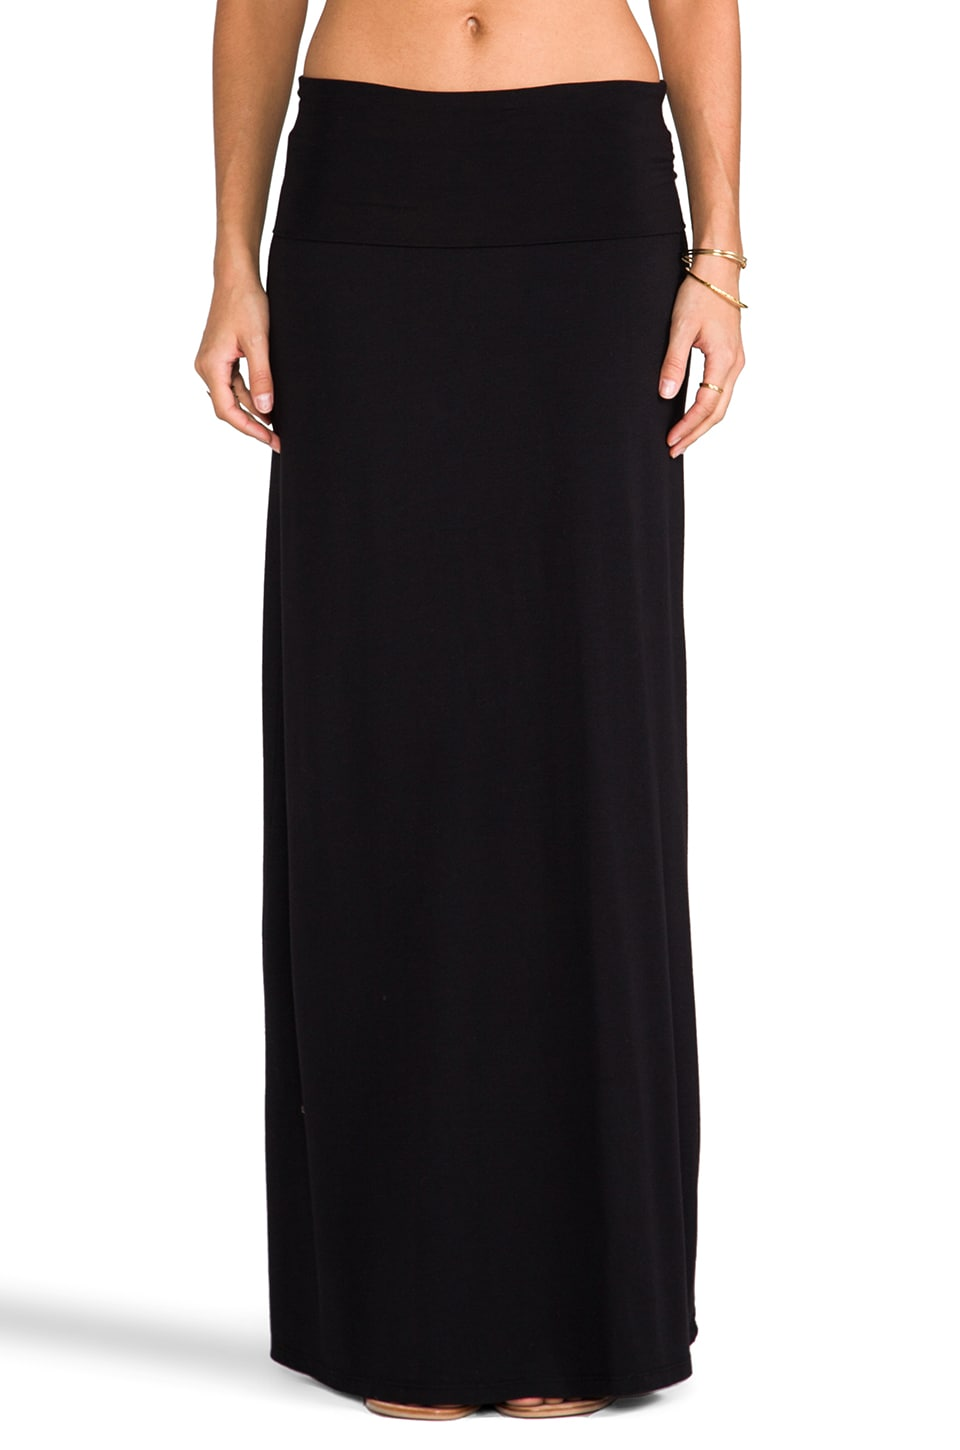 Splendid Maxi Skirt in Black